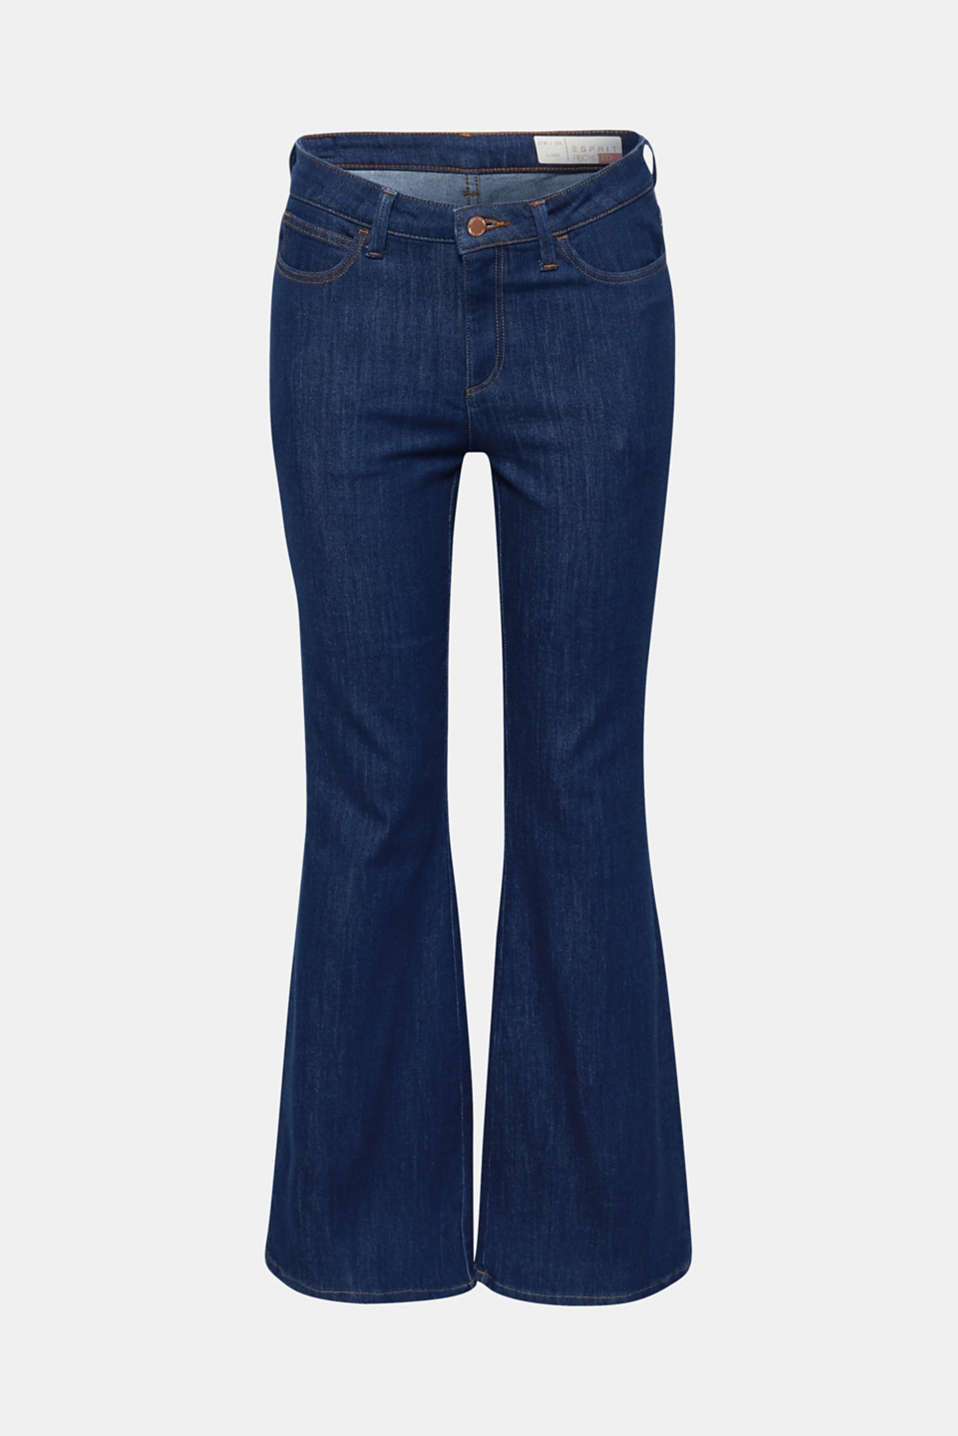 Bootcut stretch jeans, BLUE MEDIUM WASH, detail image number 8